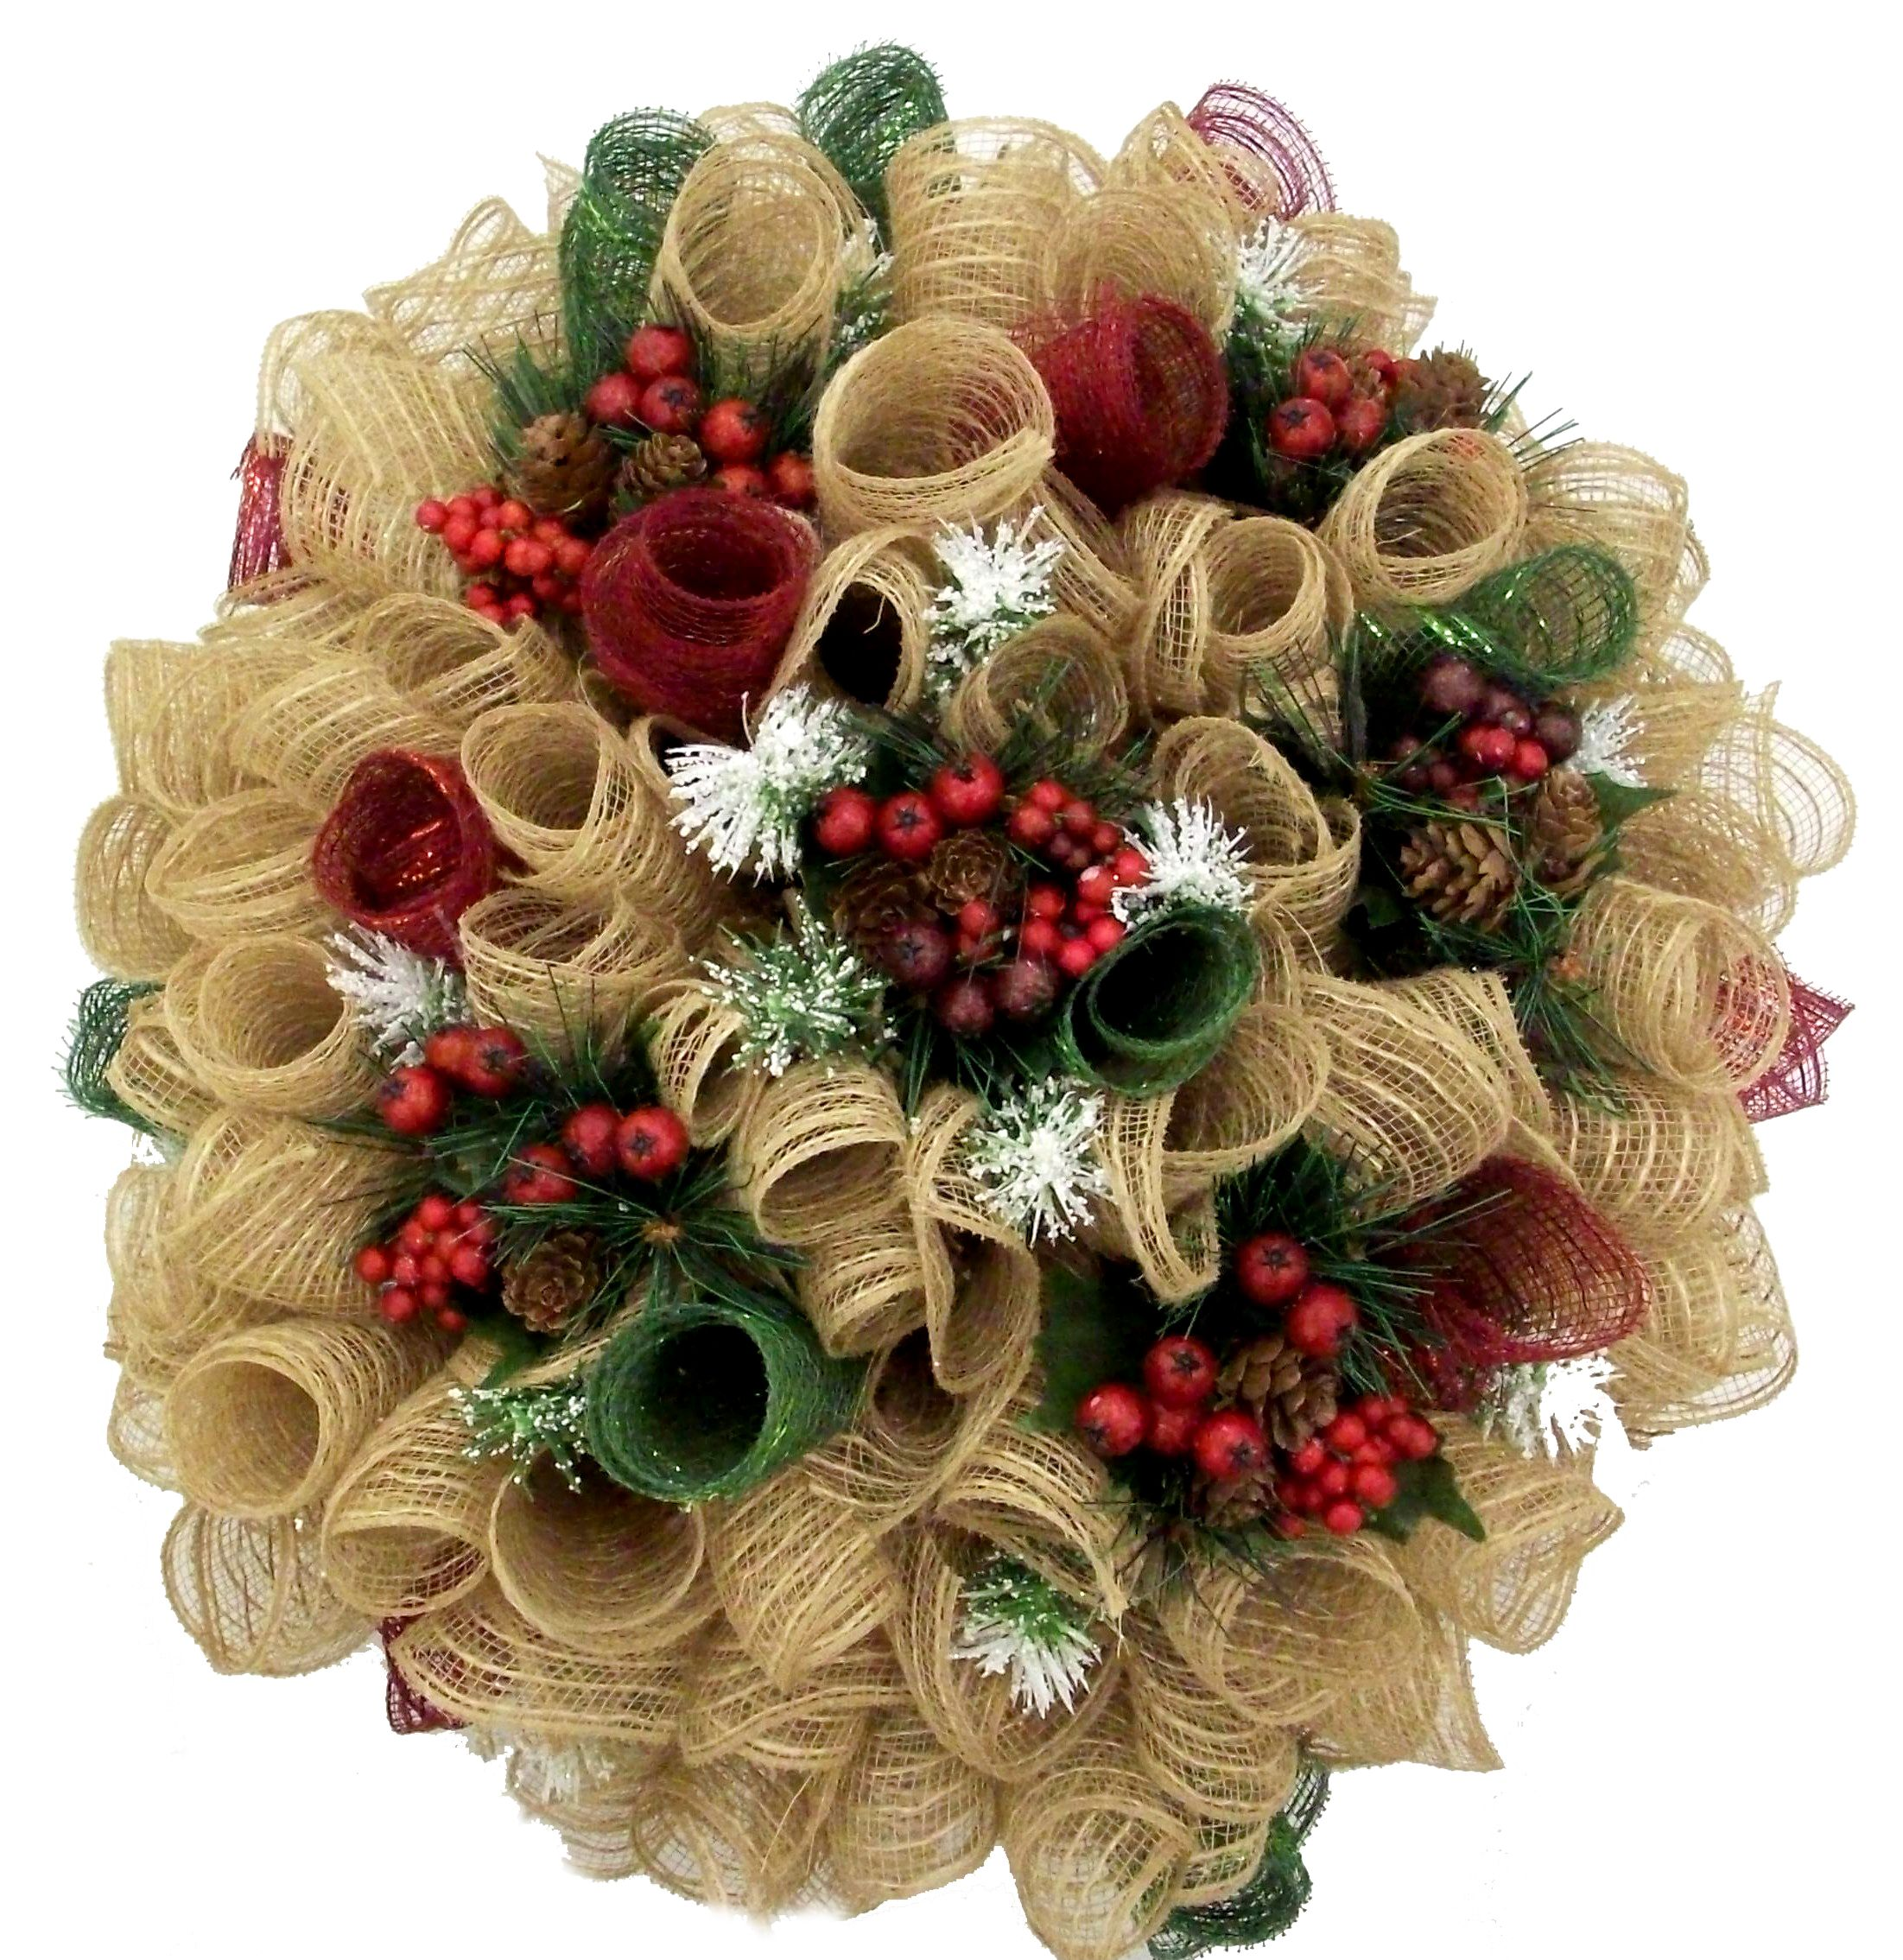 Crafts with deco mesh - Christmas Burlap Deco Mesh Wreath Designed By Karen B A C Moore Erie Pa